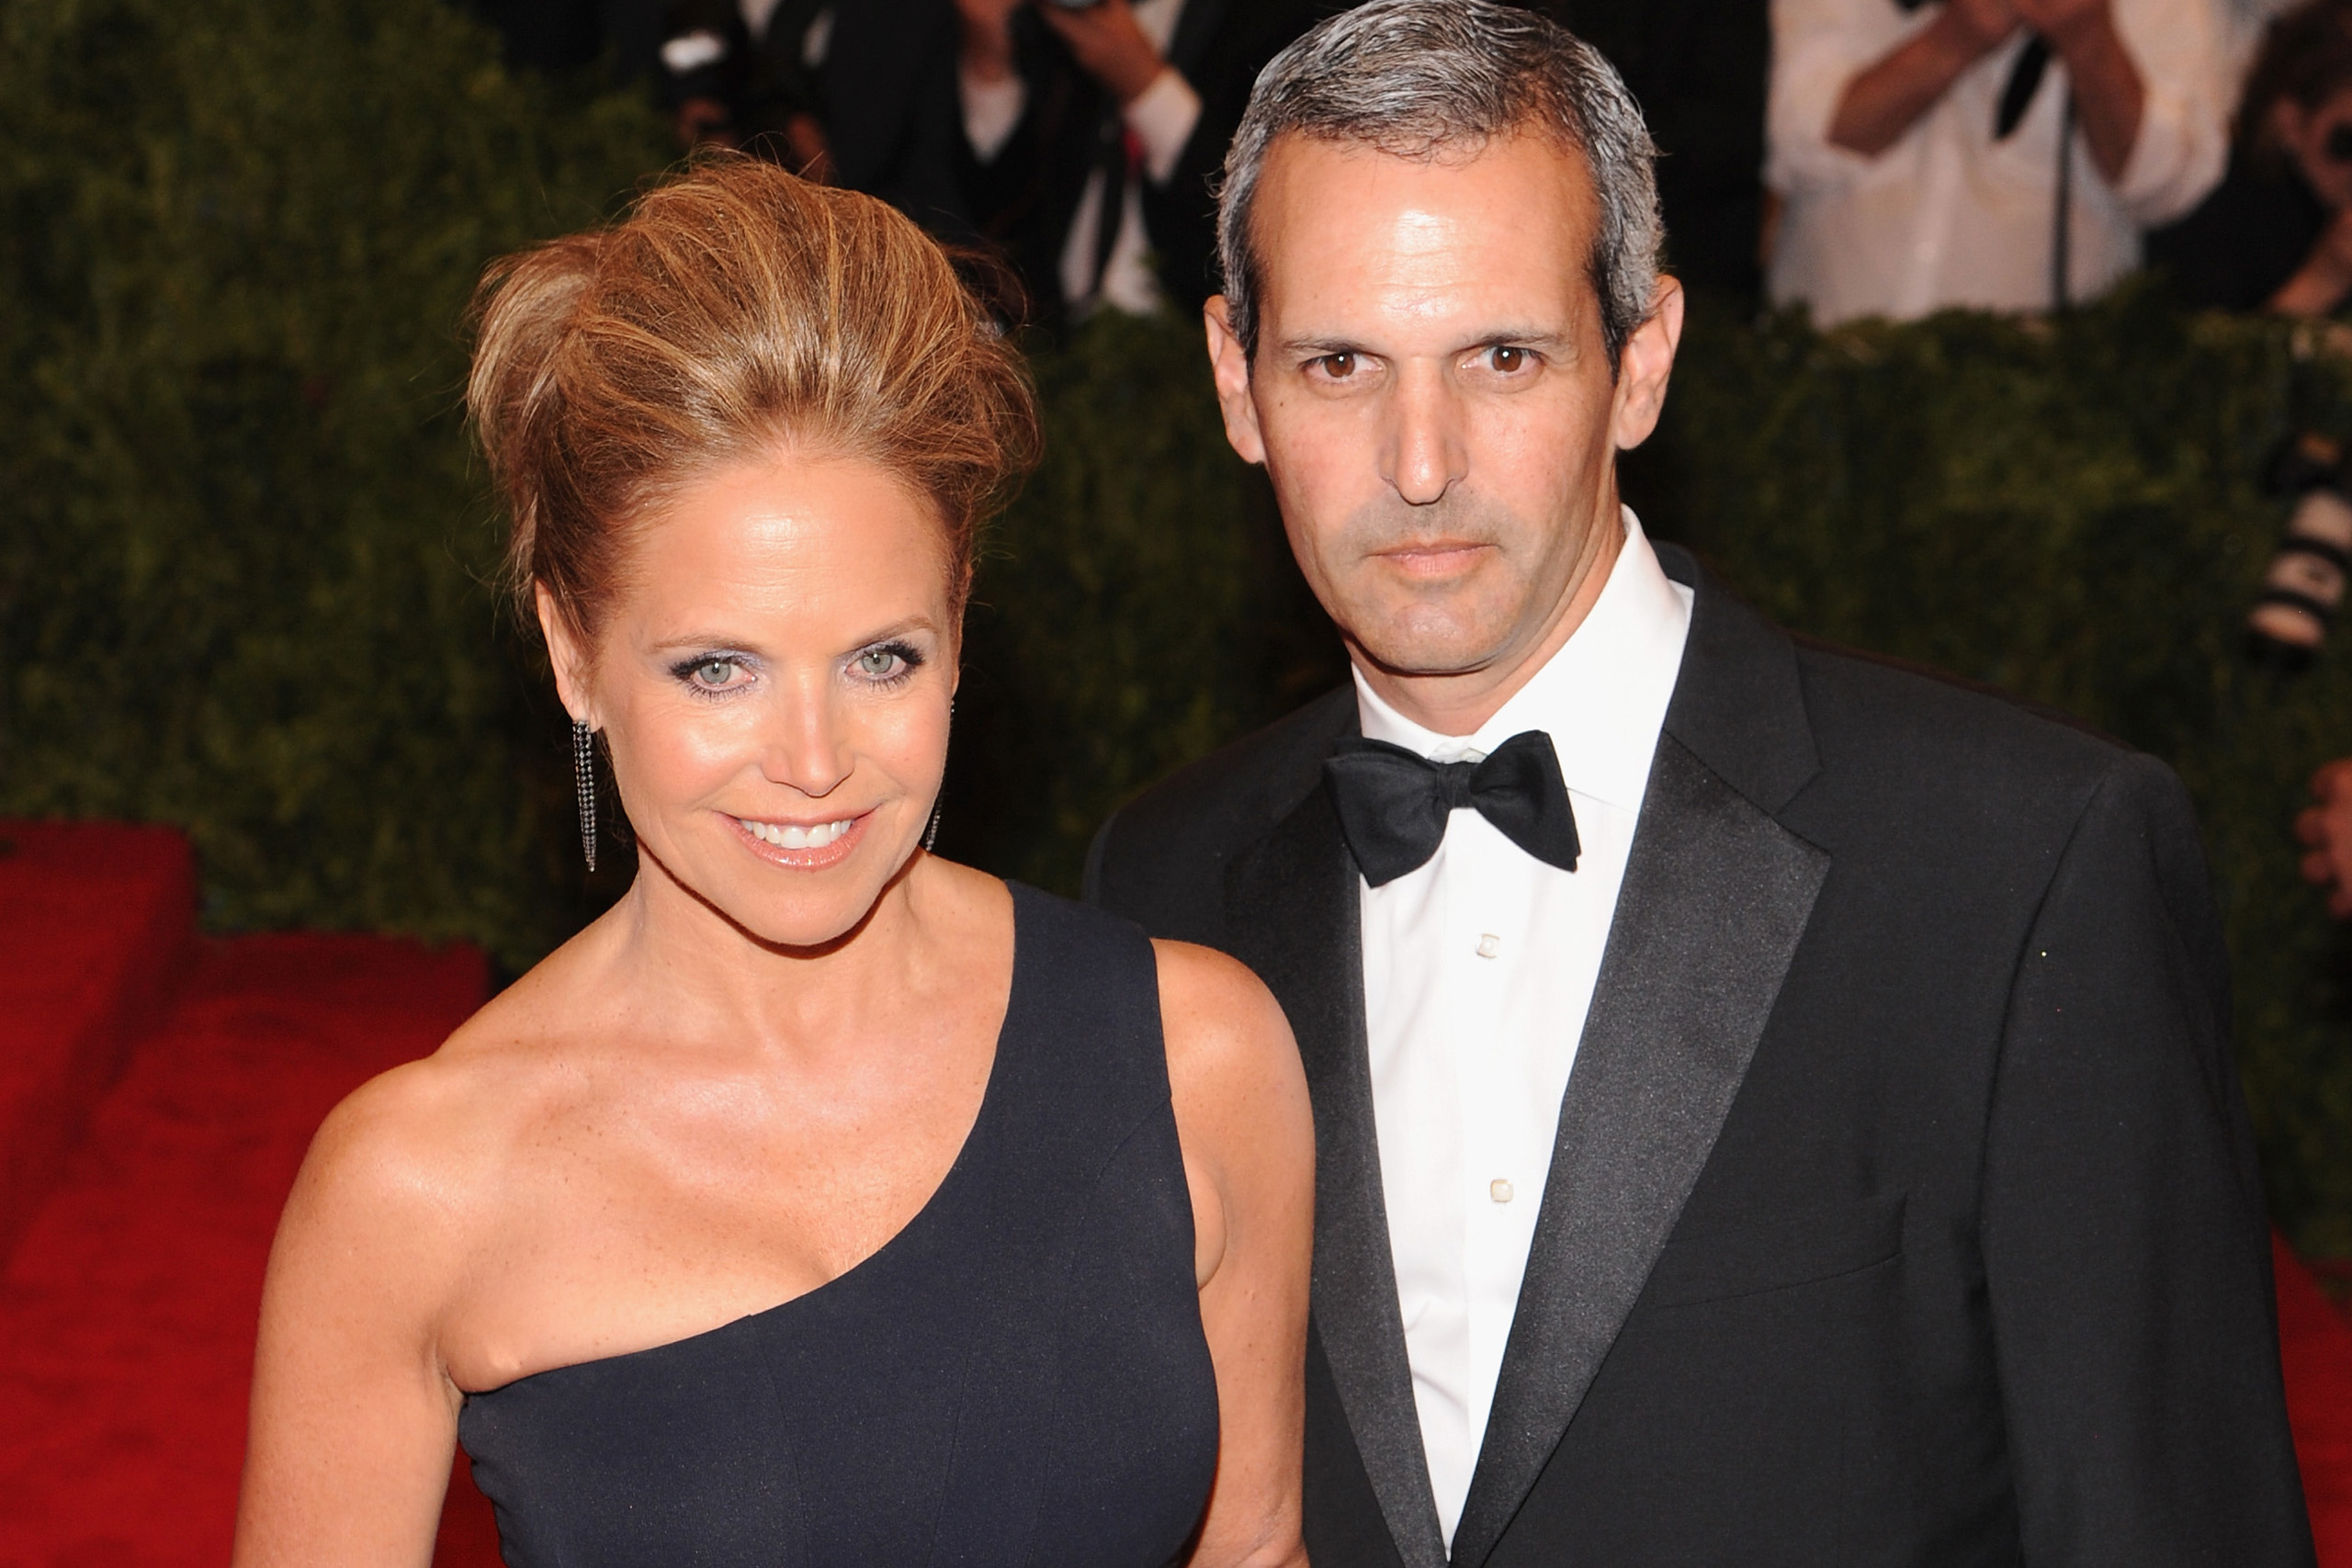 Katie Couric's Husband Wiki: Everything About John Molner